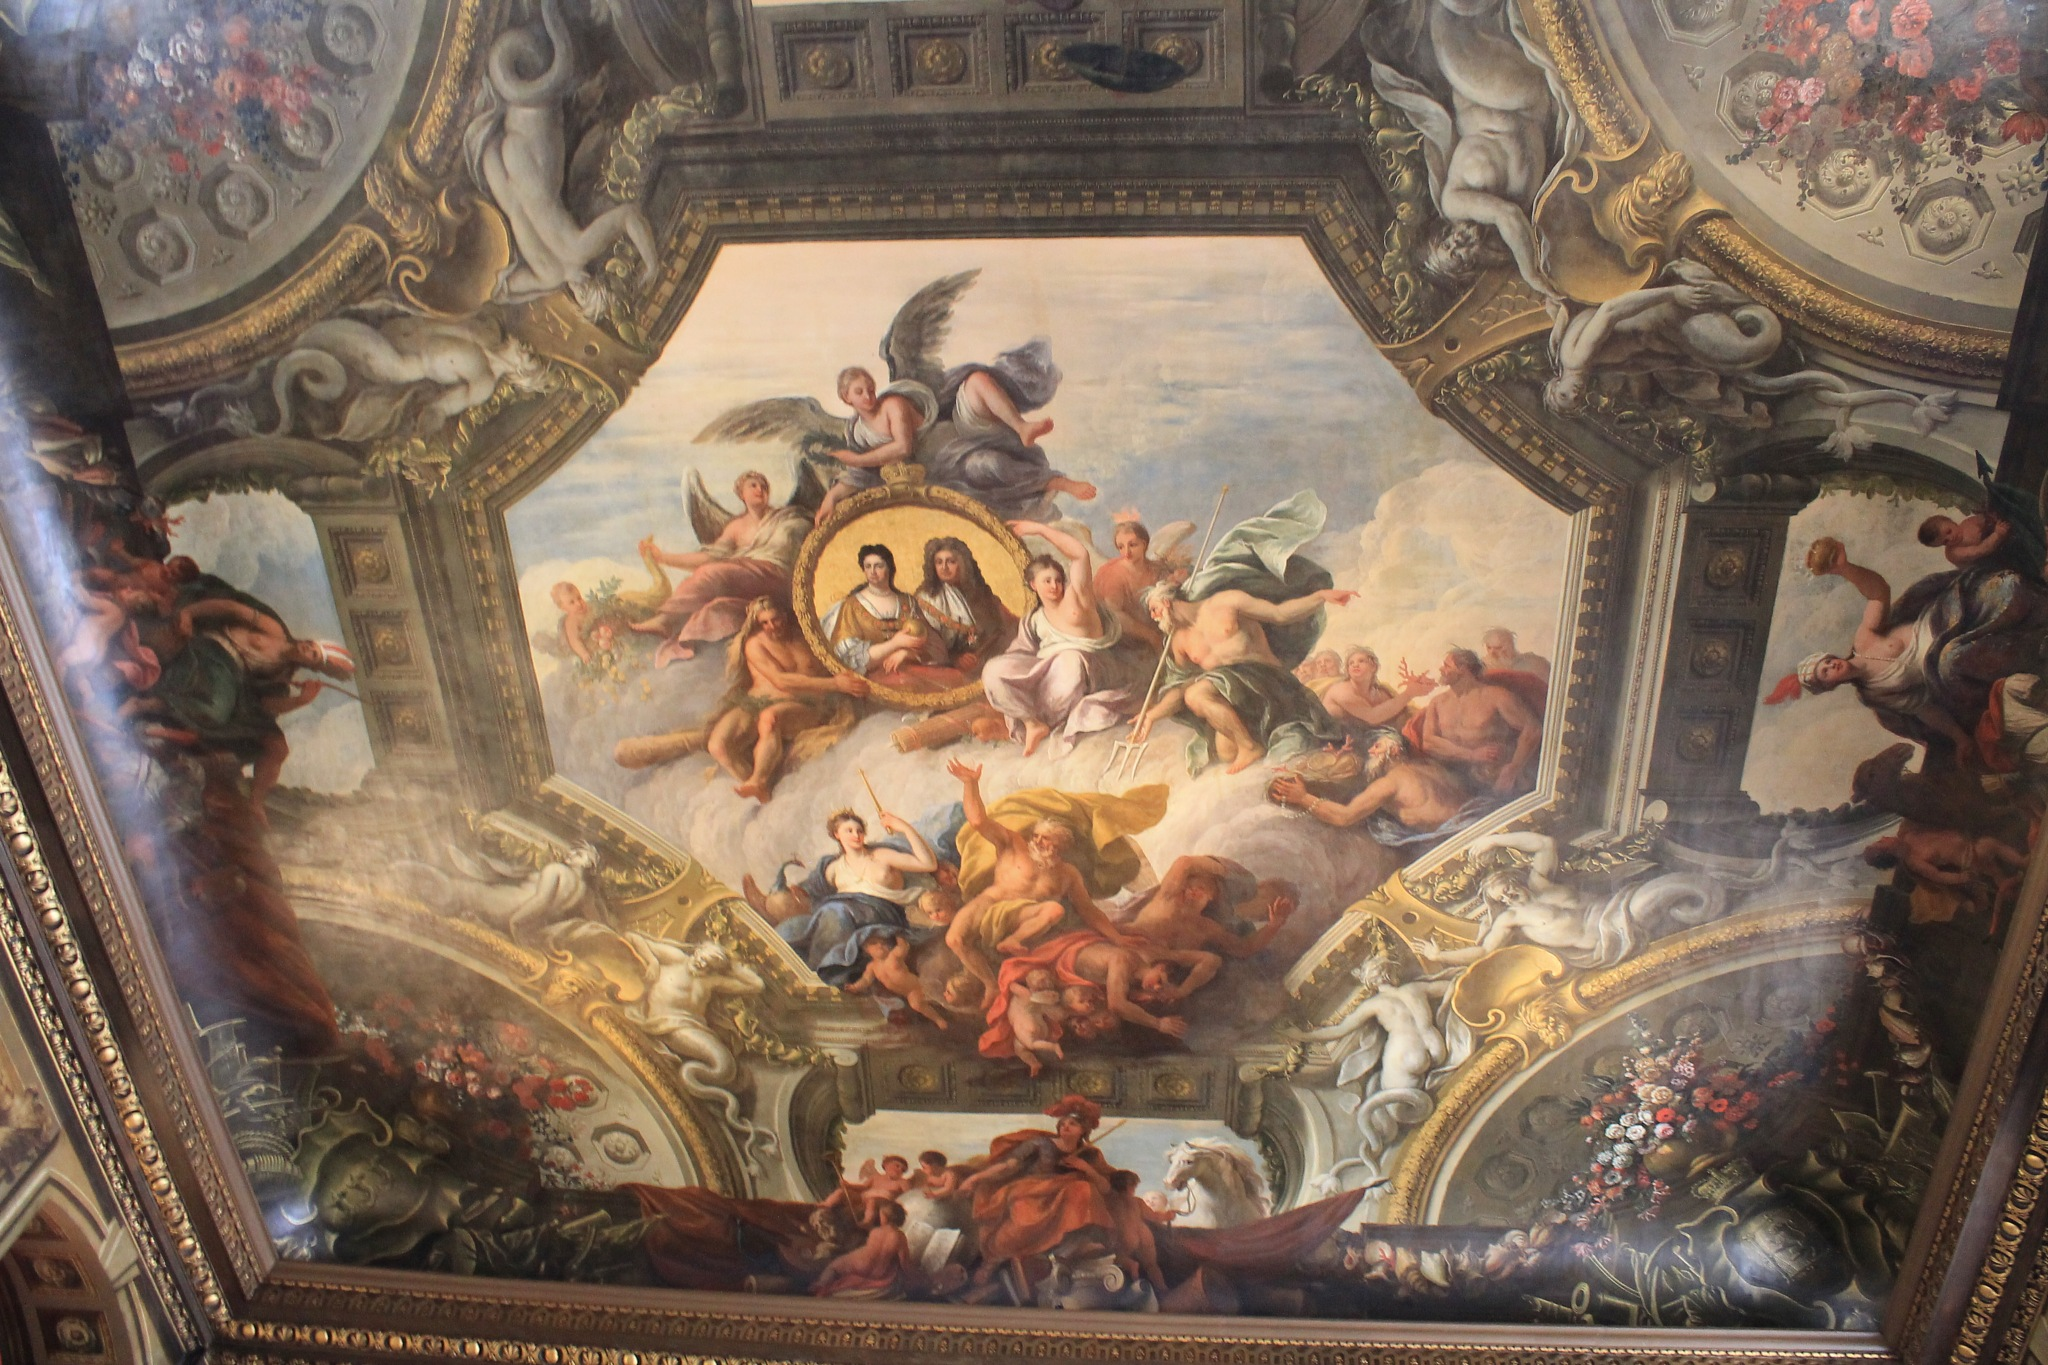 ceiling of the painted hall at the Royal Naval College by Paul Bownas